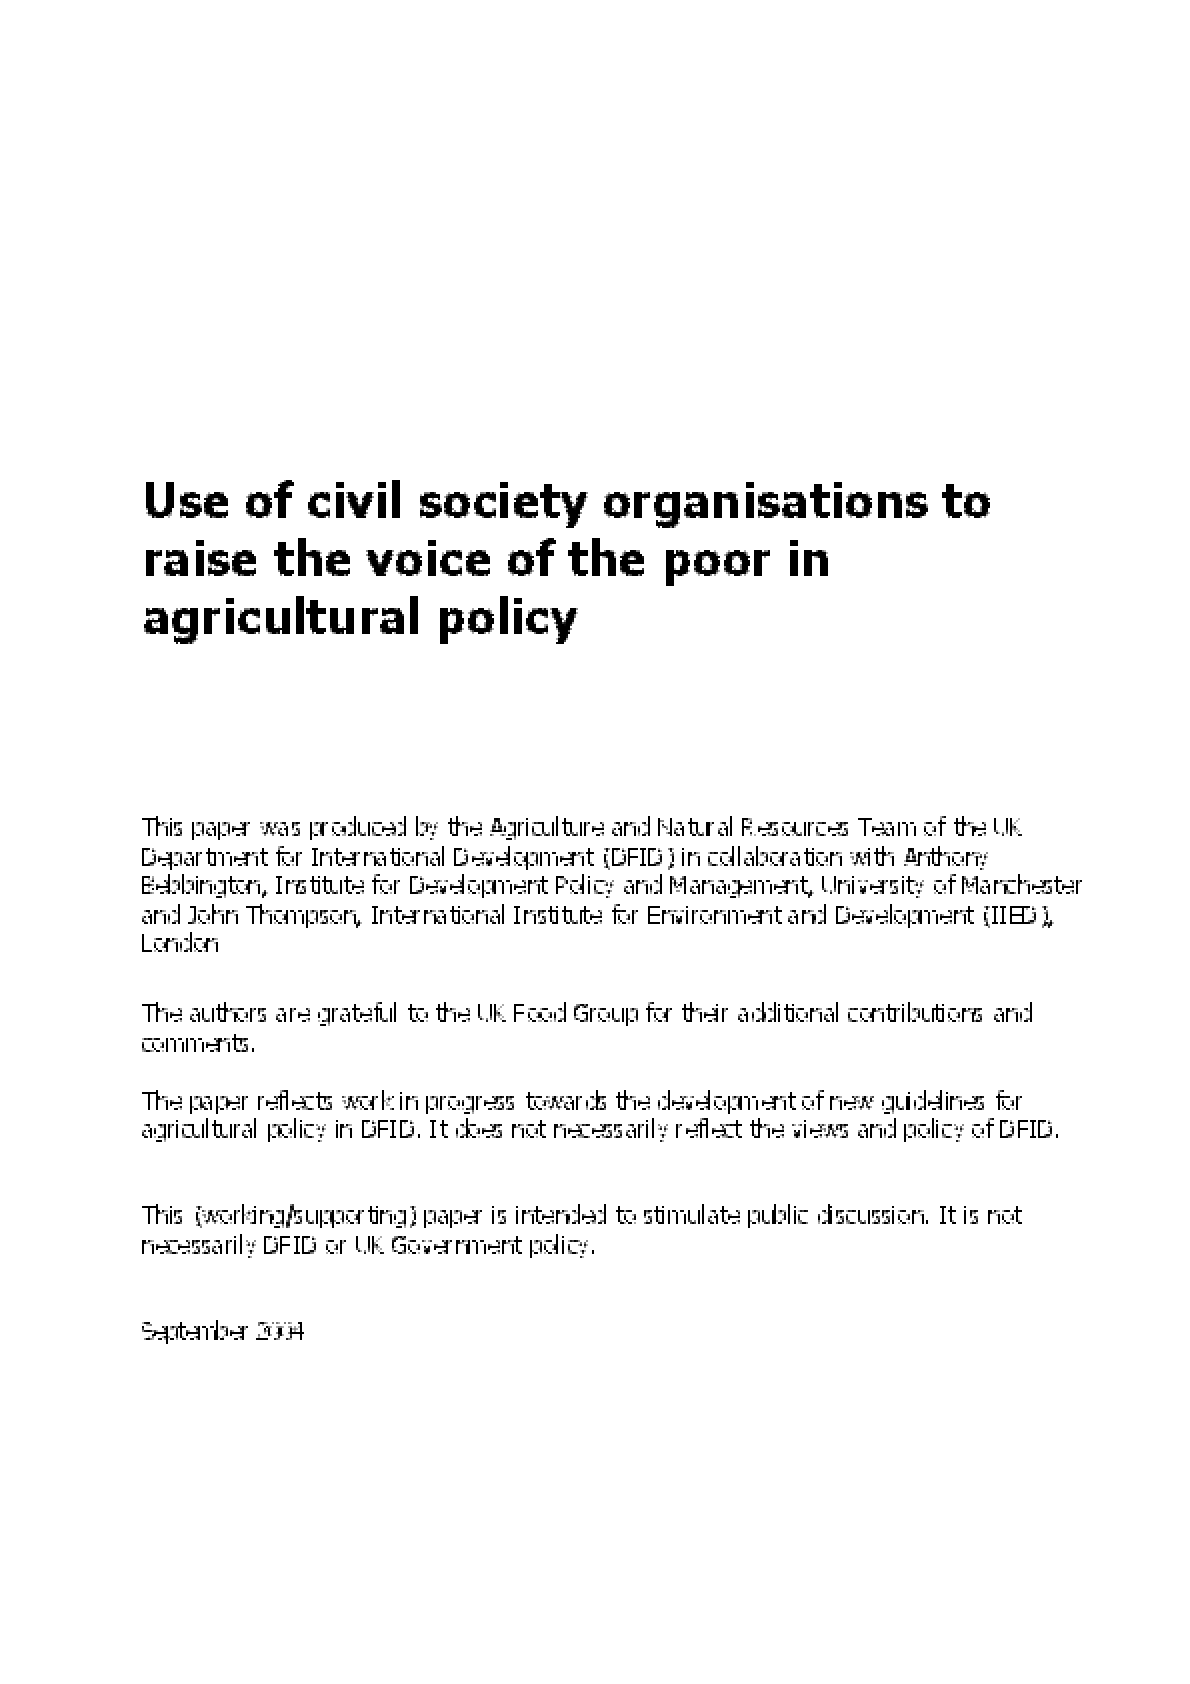 Use of Civil Society Organisations to Raise the Voice of the Poor in Agricultural Policy